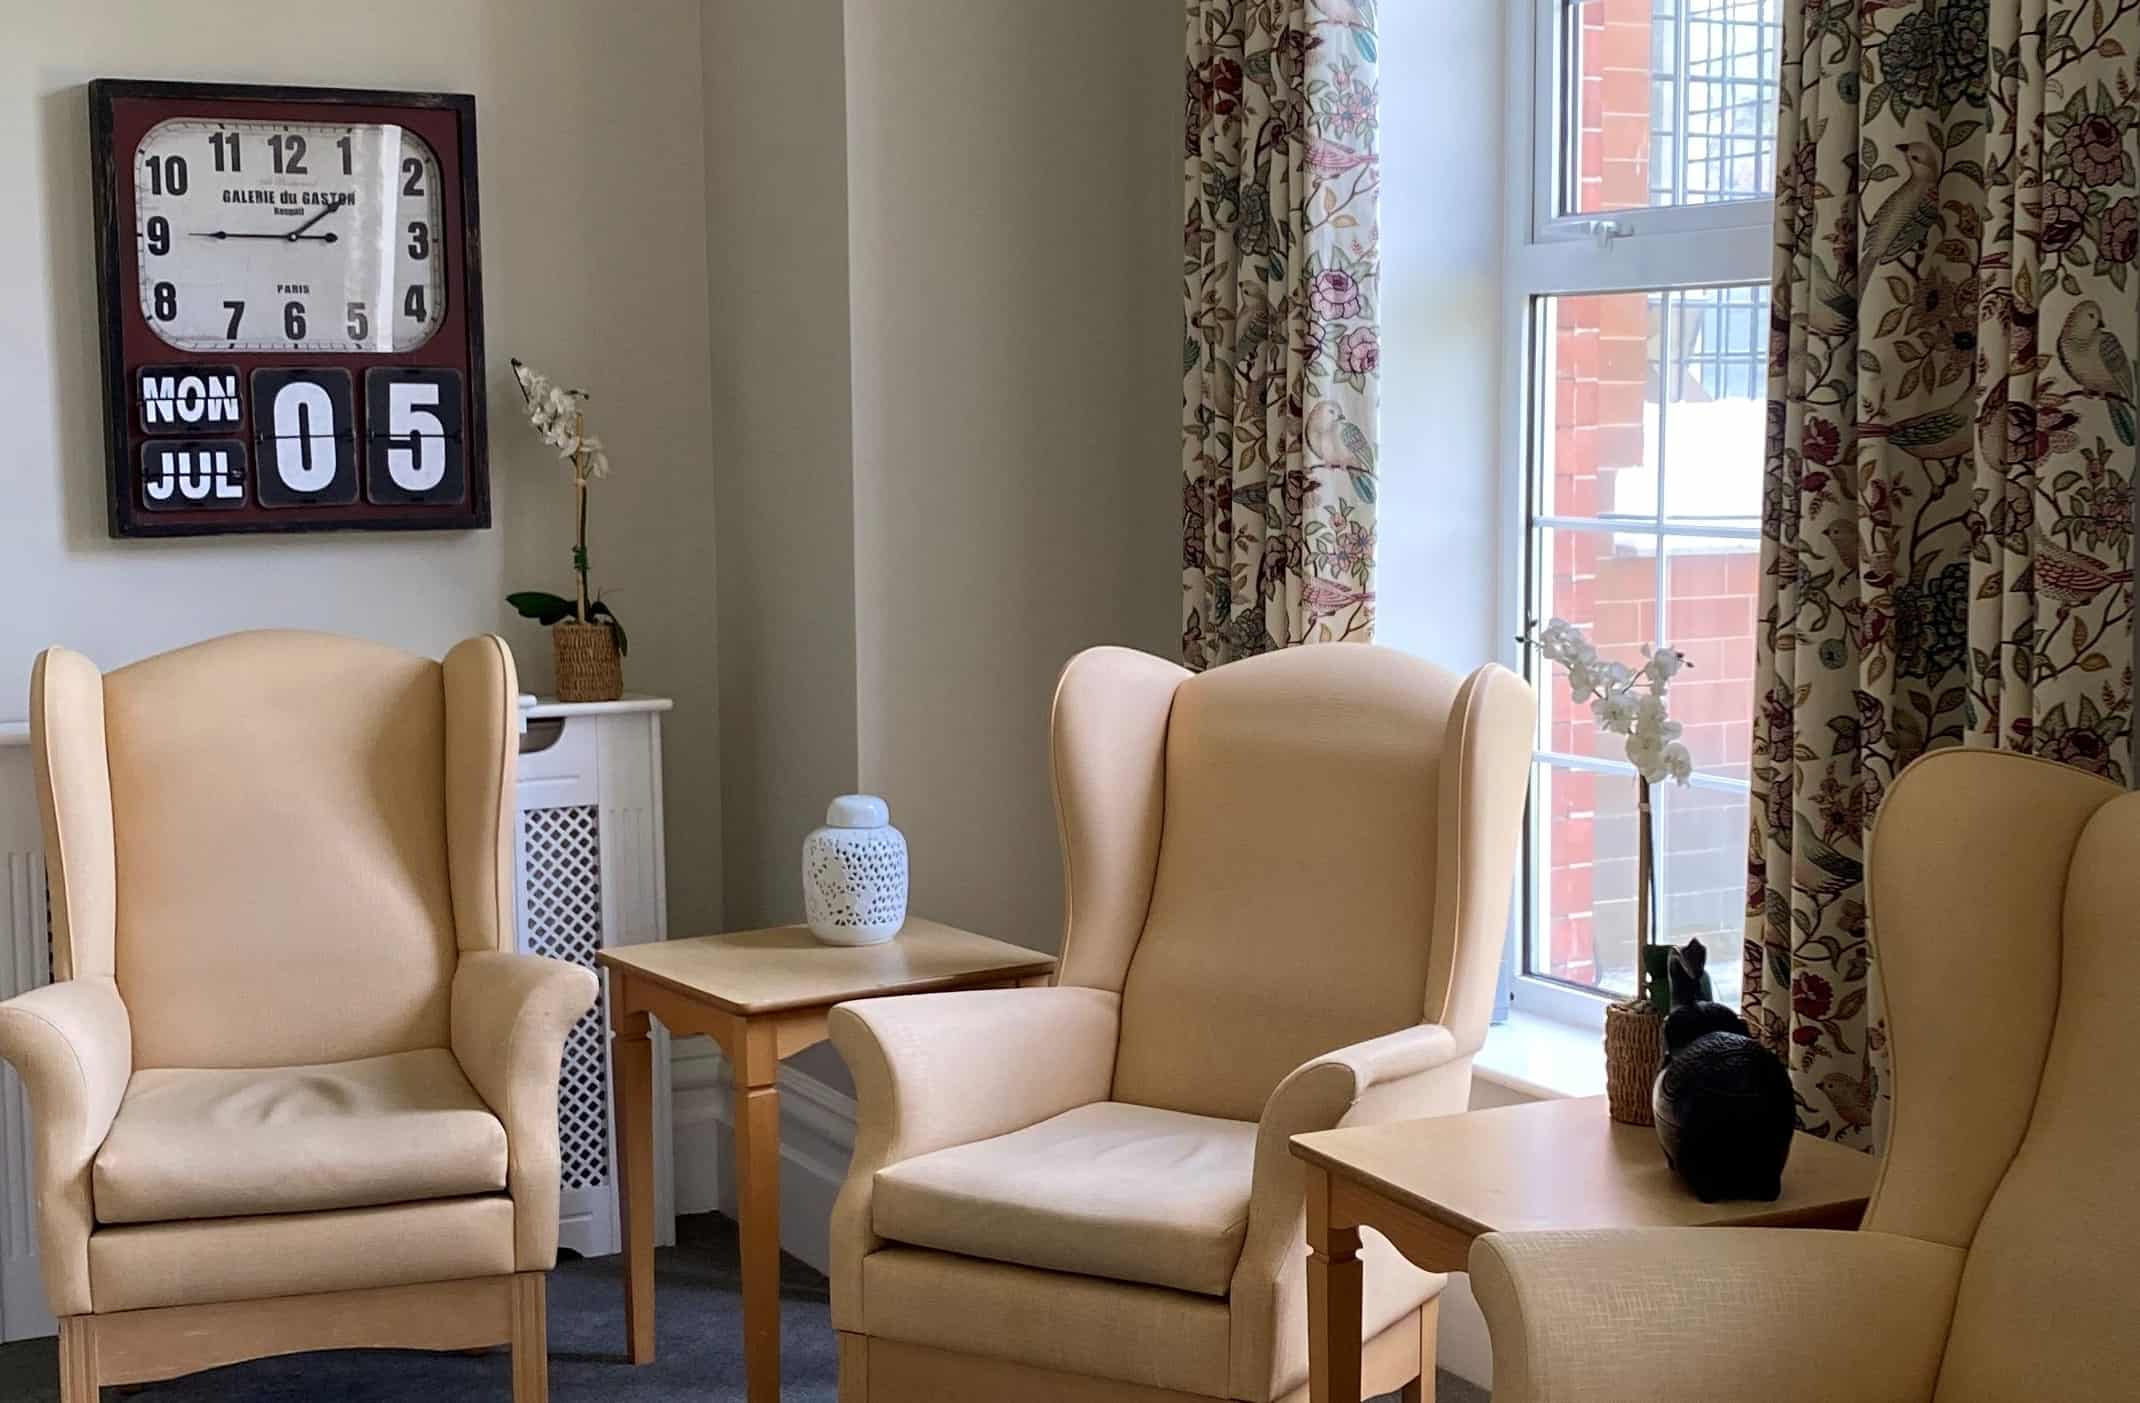 friendly residential care accommodation - Comfy chairs in corner of large lounge